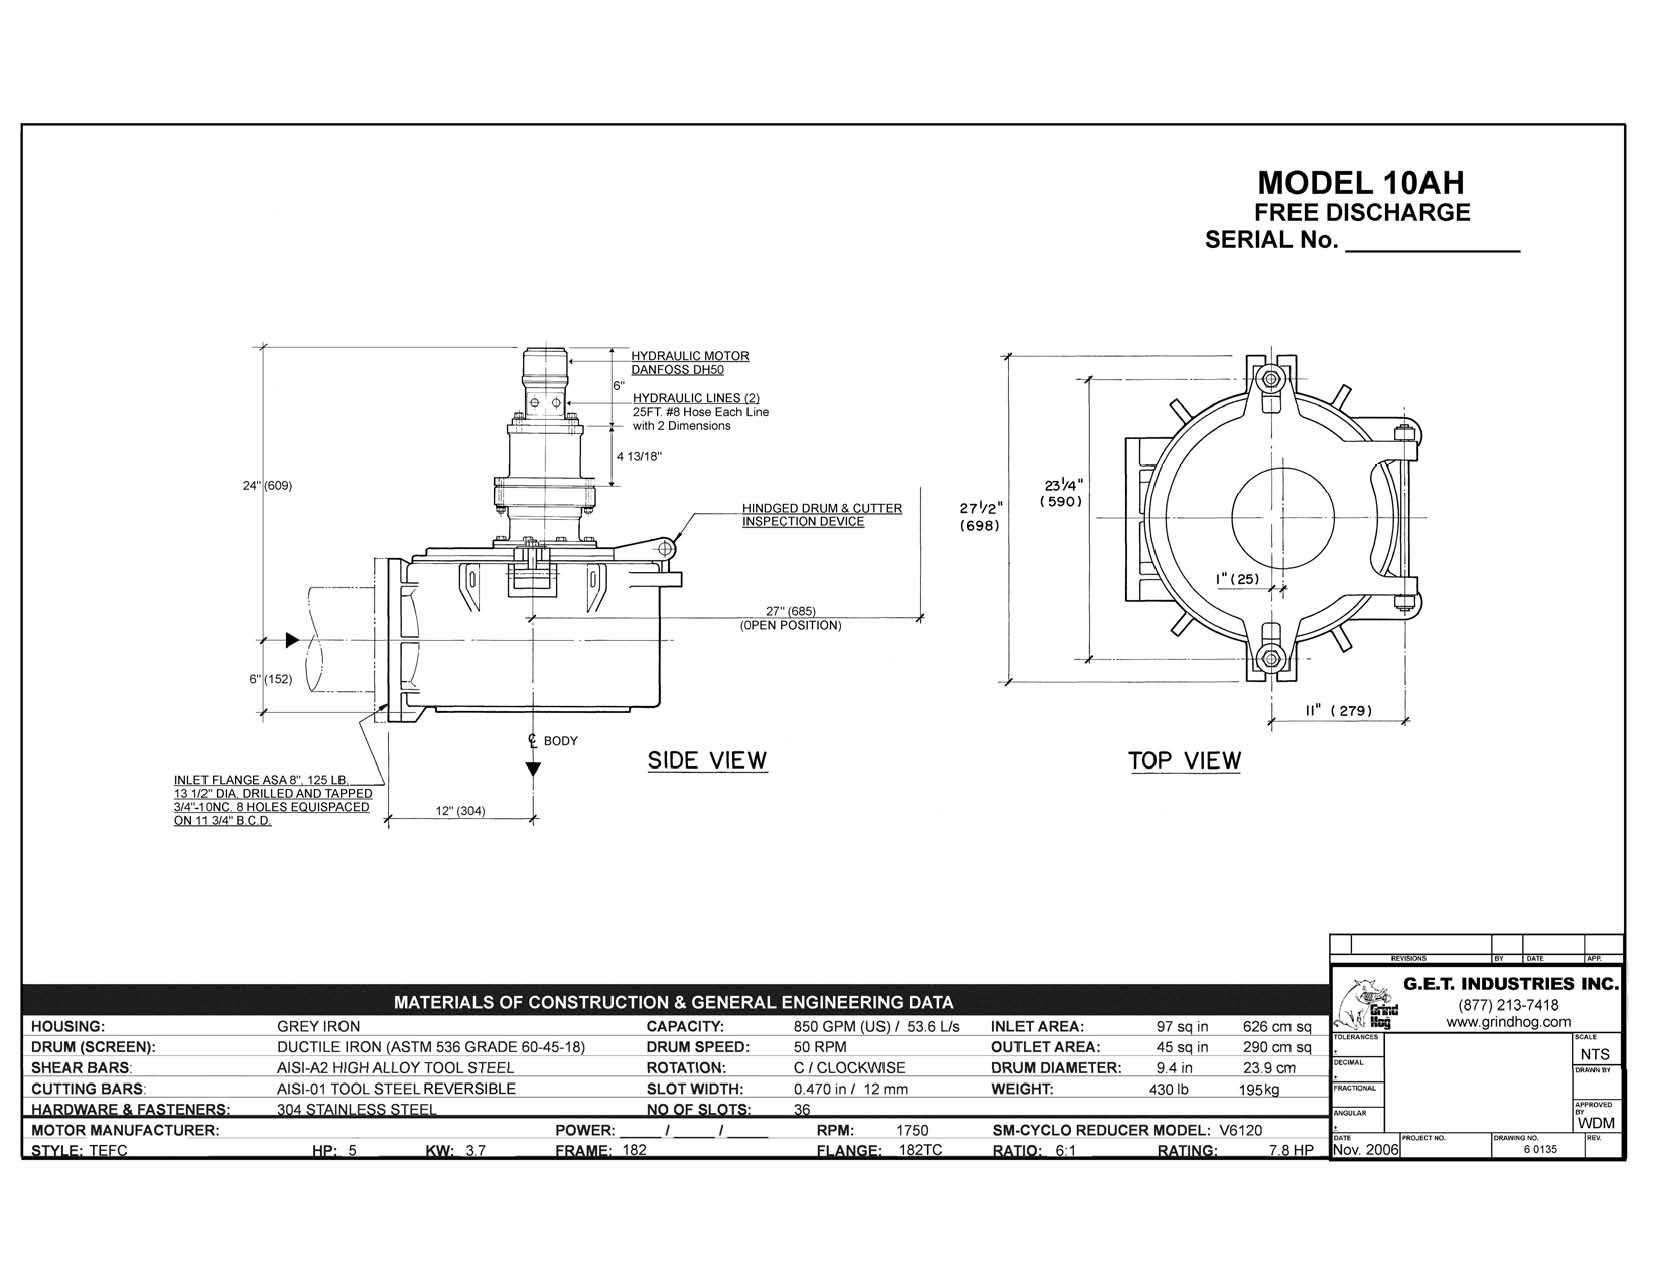 data drawing for Model 10AH